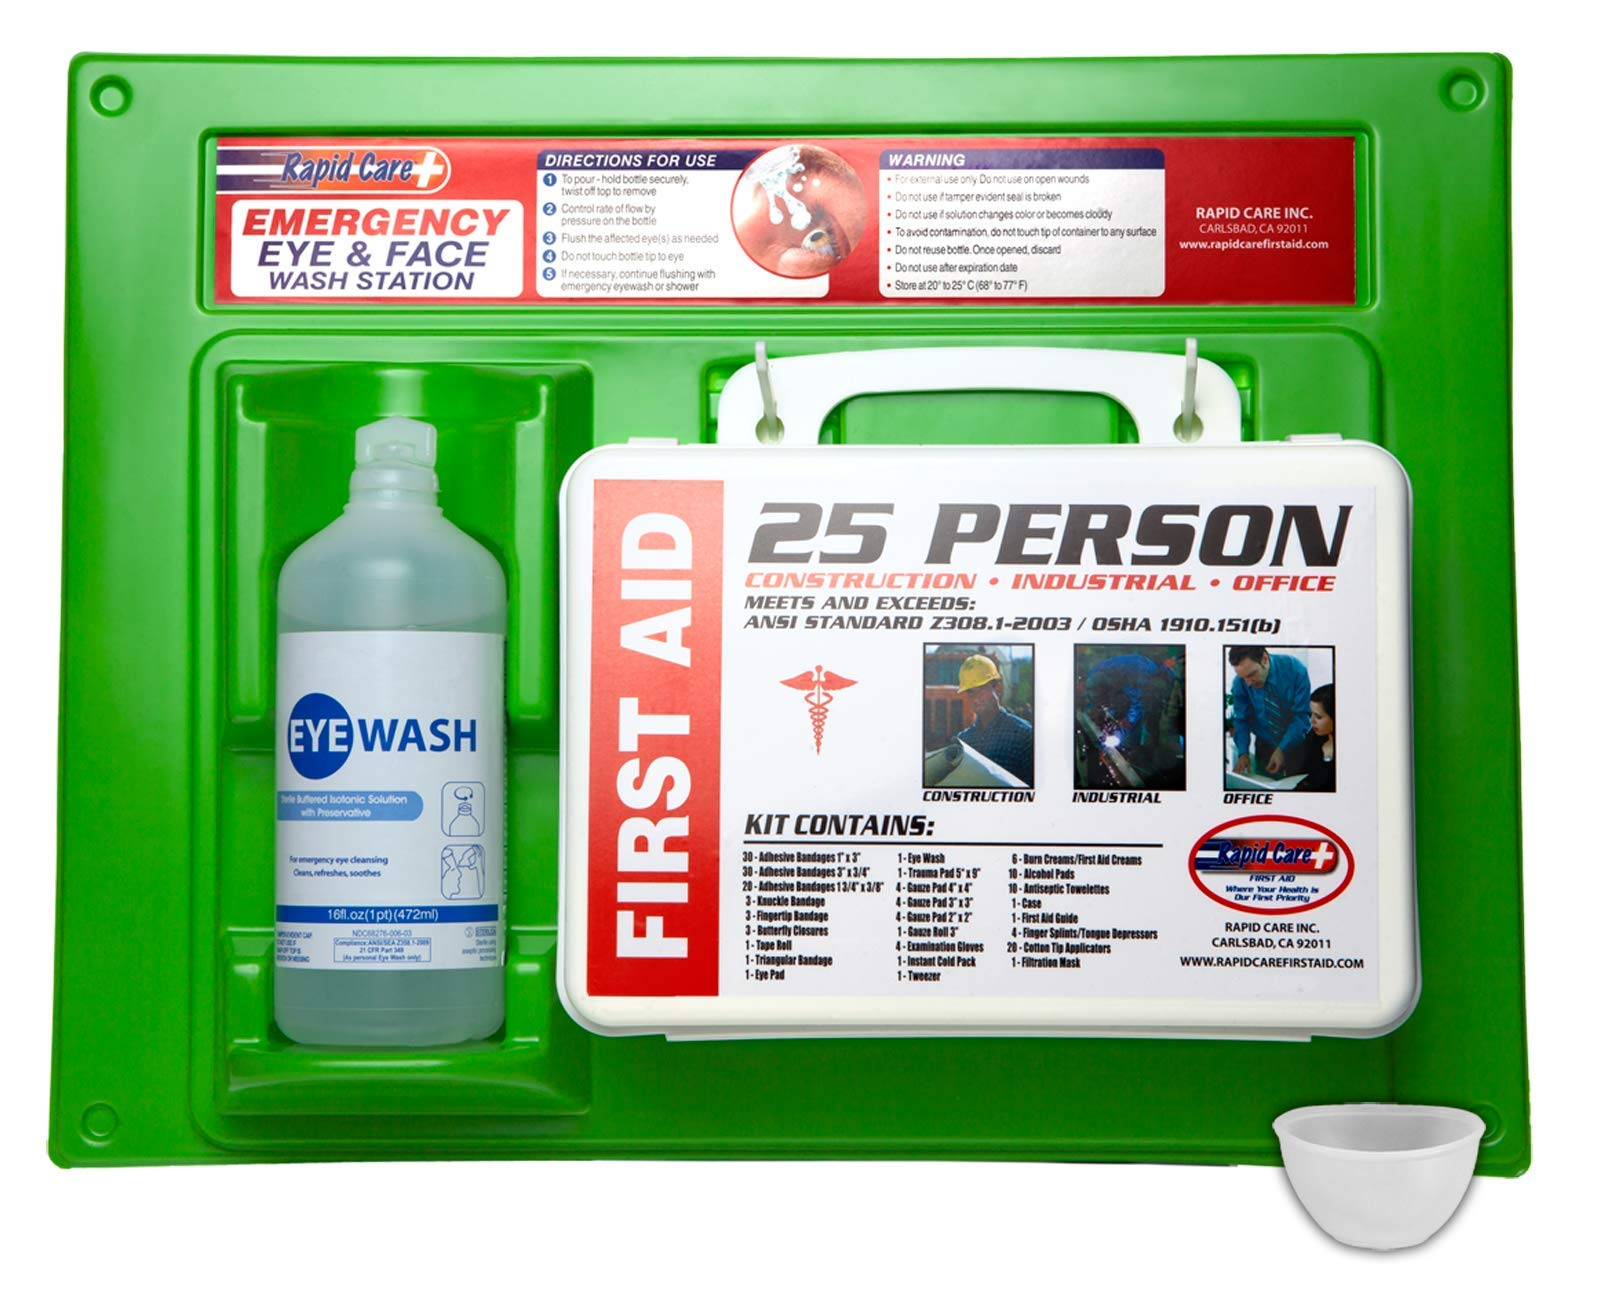 Rapid Care First Aid 661755 16 Oz. Eye Wash Station with First Aid Kit (166Piece for 25 Person), OSHA/ANSI & FDA Compliant, Bonus Reusable Eye Cup & Mounting hardware, 17'' x 10 3/8'' x 3 1/2''